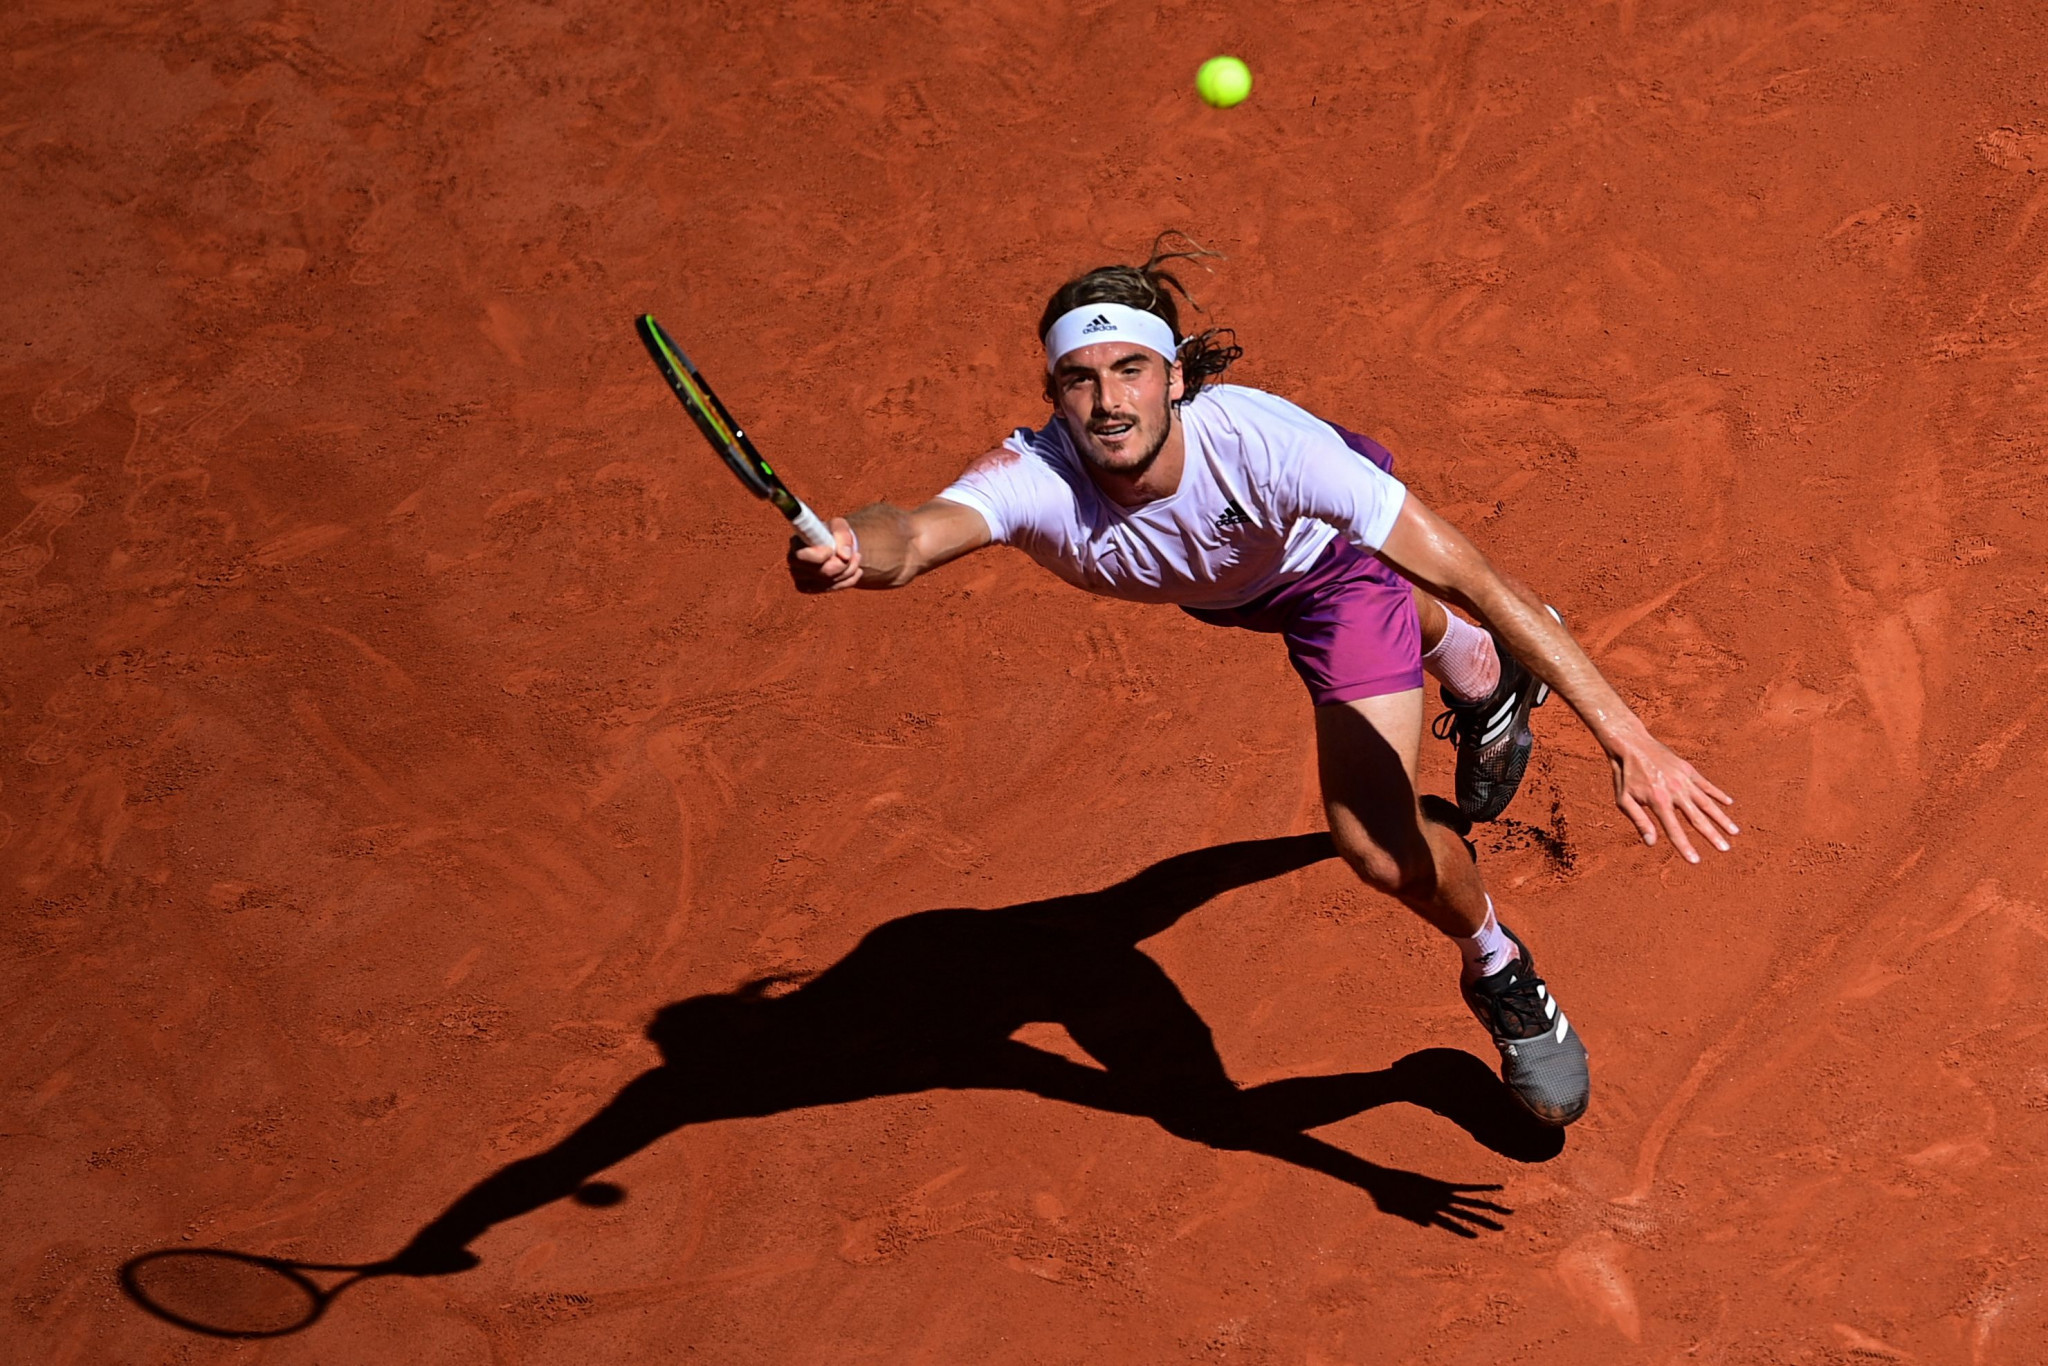 Stefanos Tsitsipas held a two-set lead but was unable to finish the job as Novak Djokovic stormed from behind to win ©Getty Images